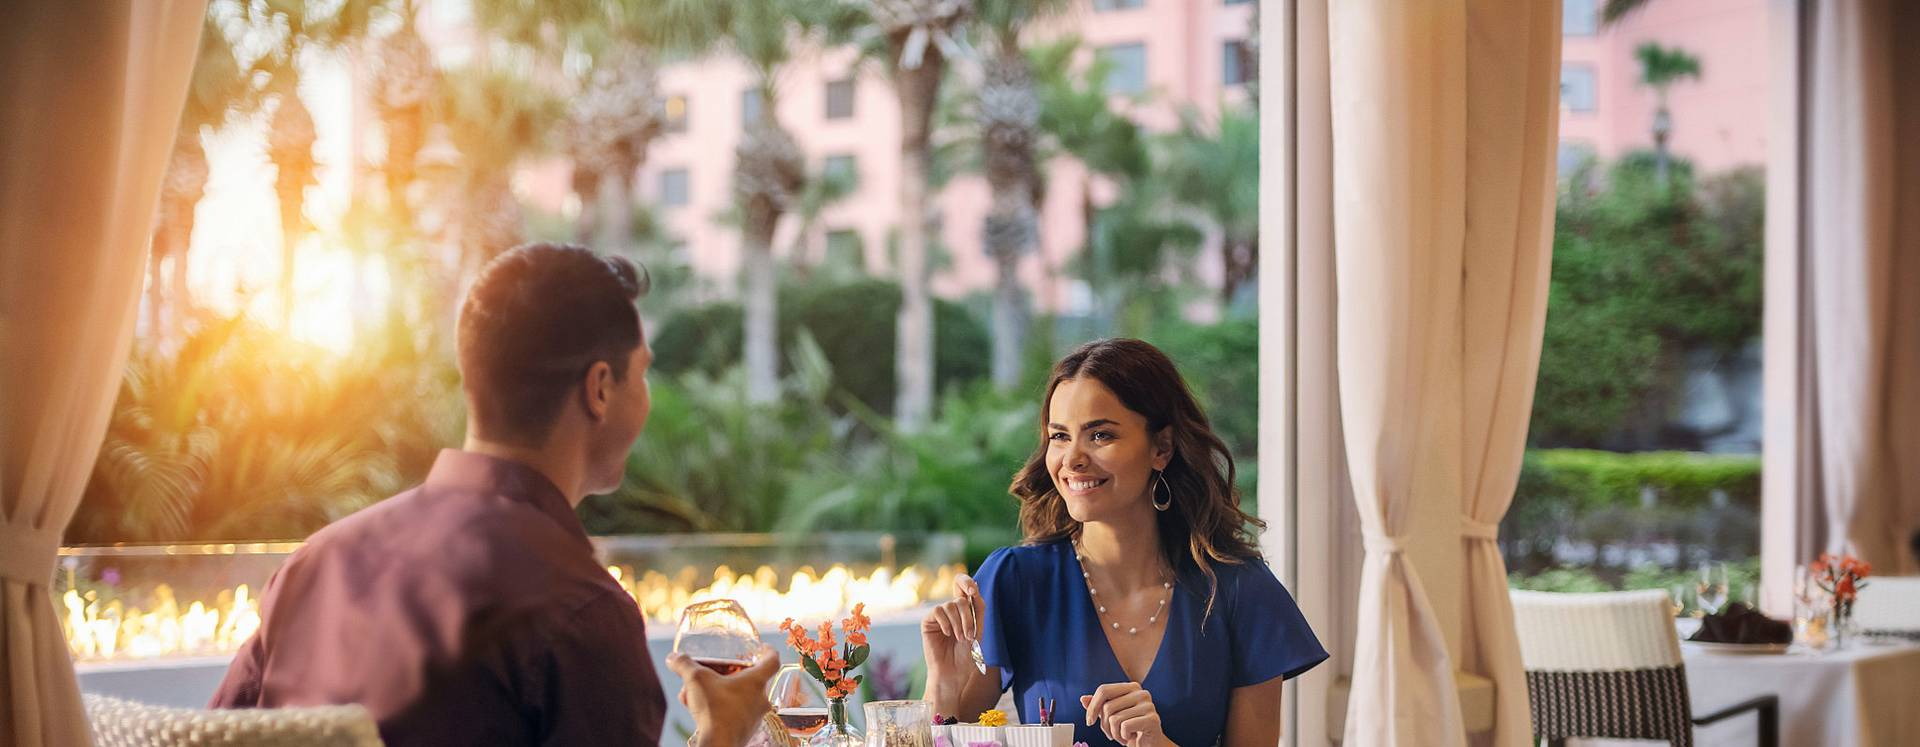 A couple enjoying the sunset while dining outdoors at The Venetian Chophouse